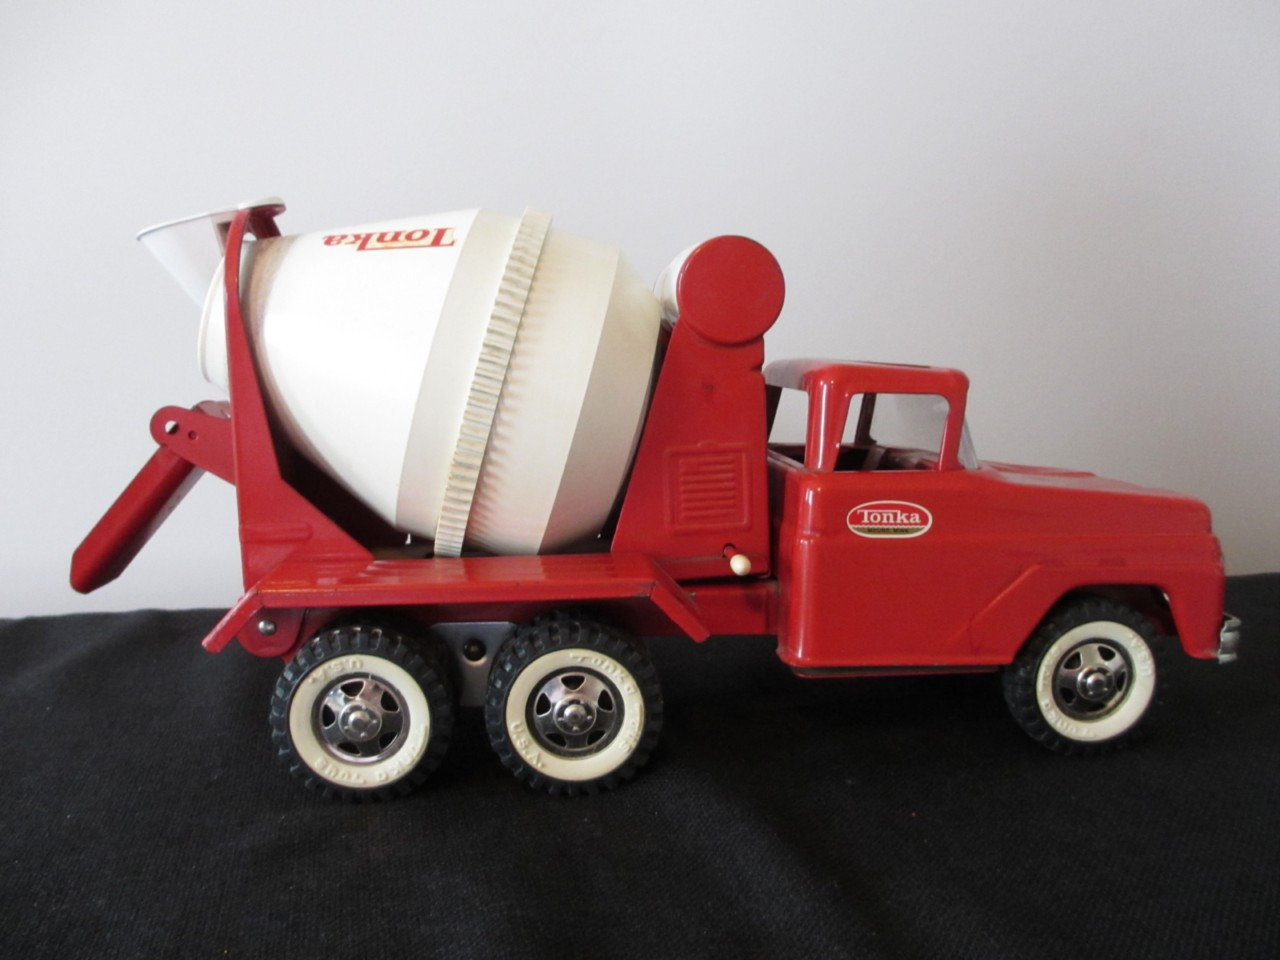 Mixer Truck Toy : Vintage tonka concrete cement mixer delivery toy truck